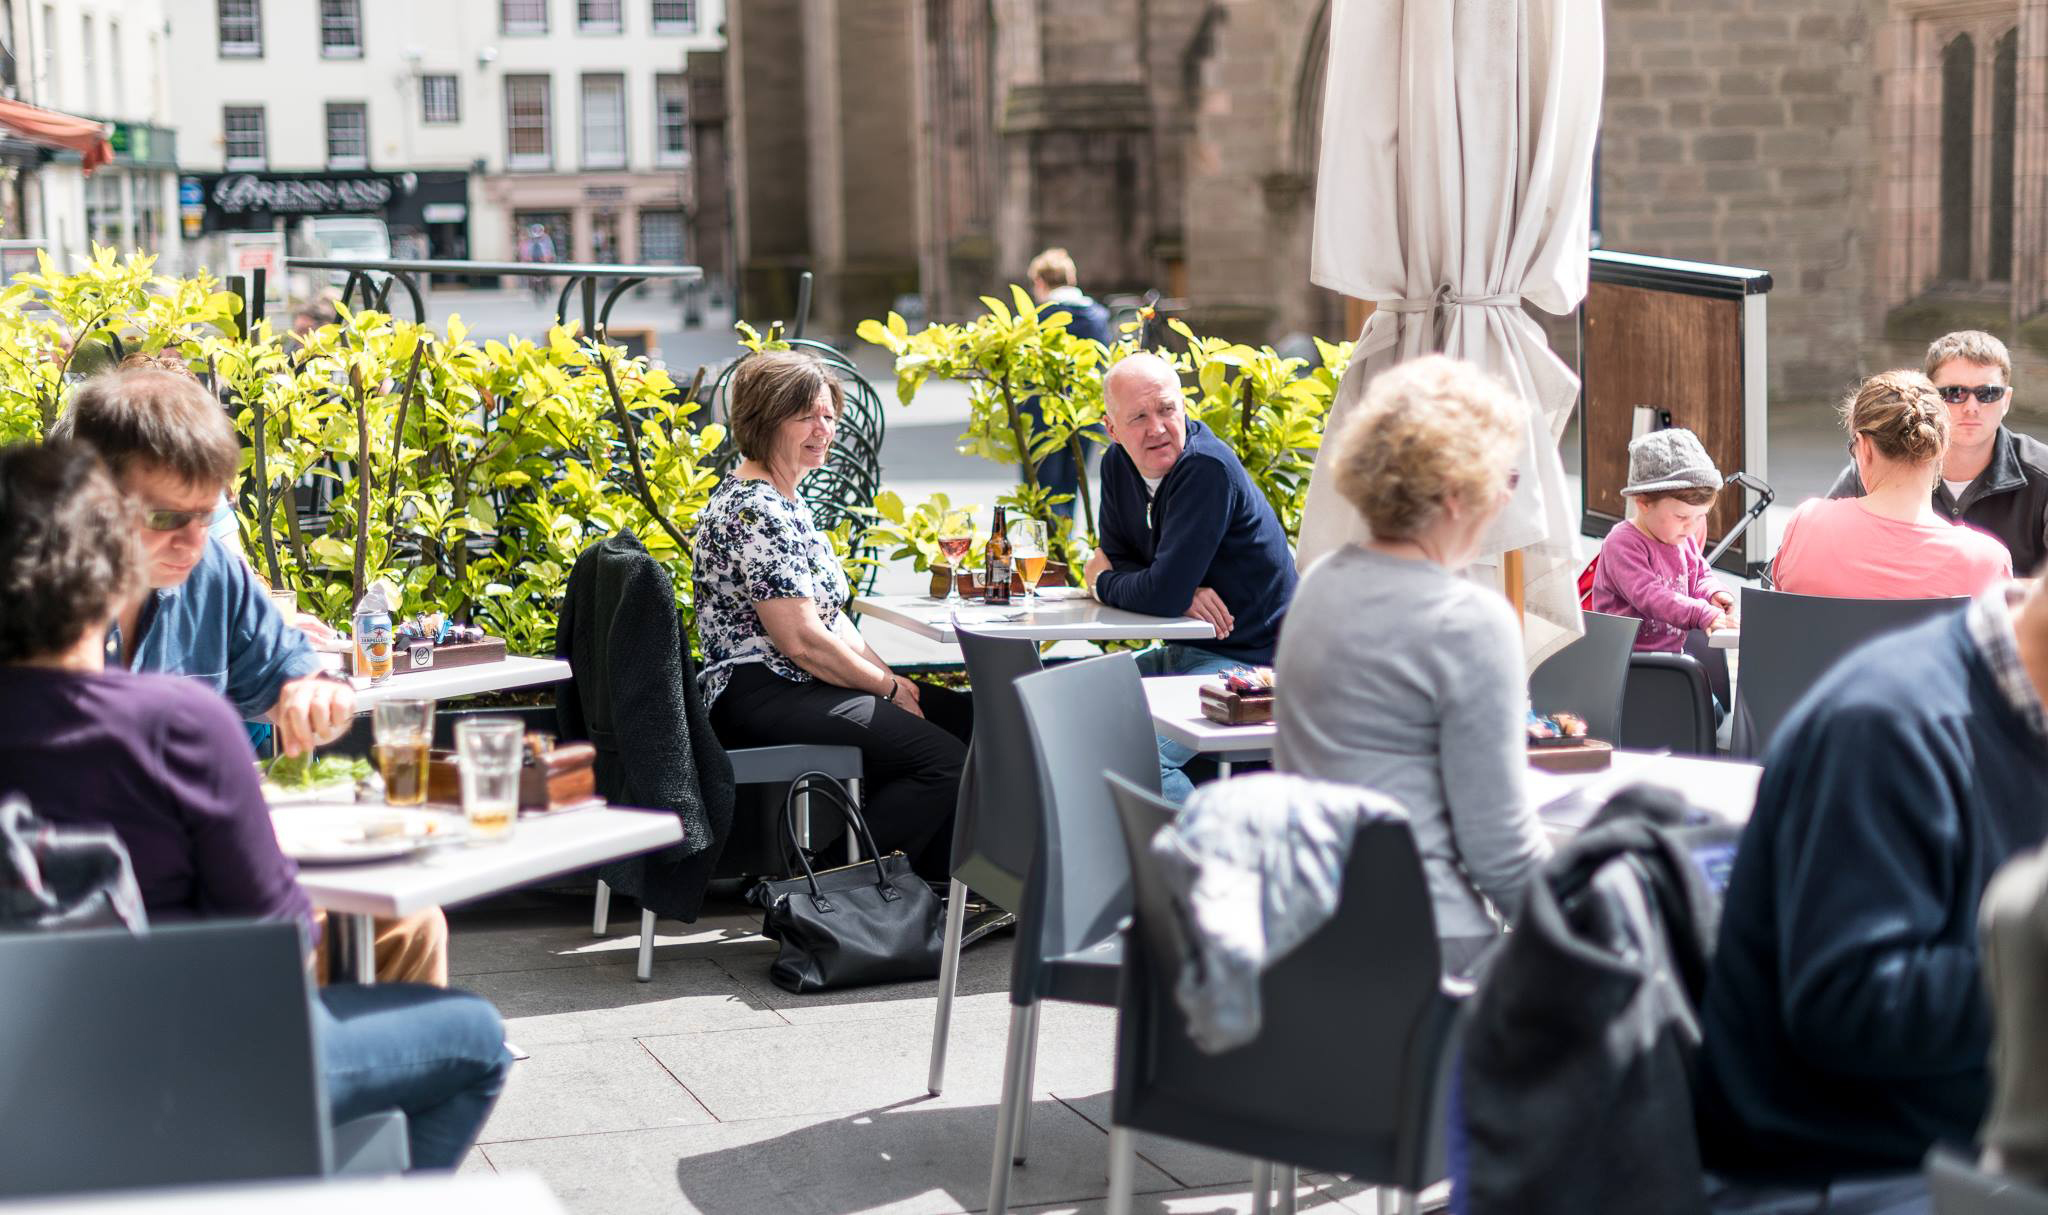 Outdoor dining in Perth city centre.